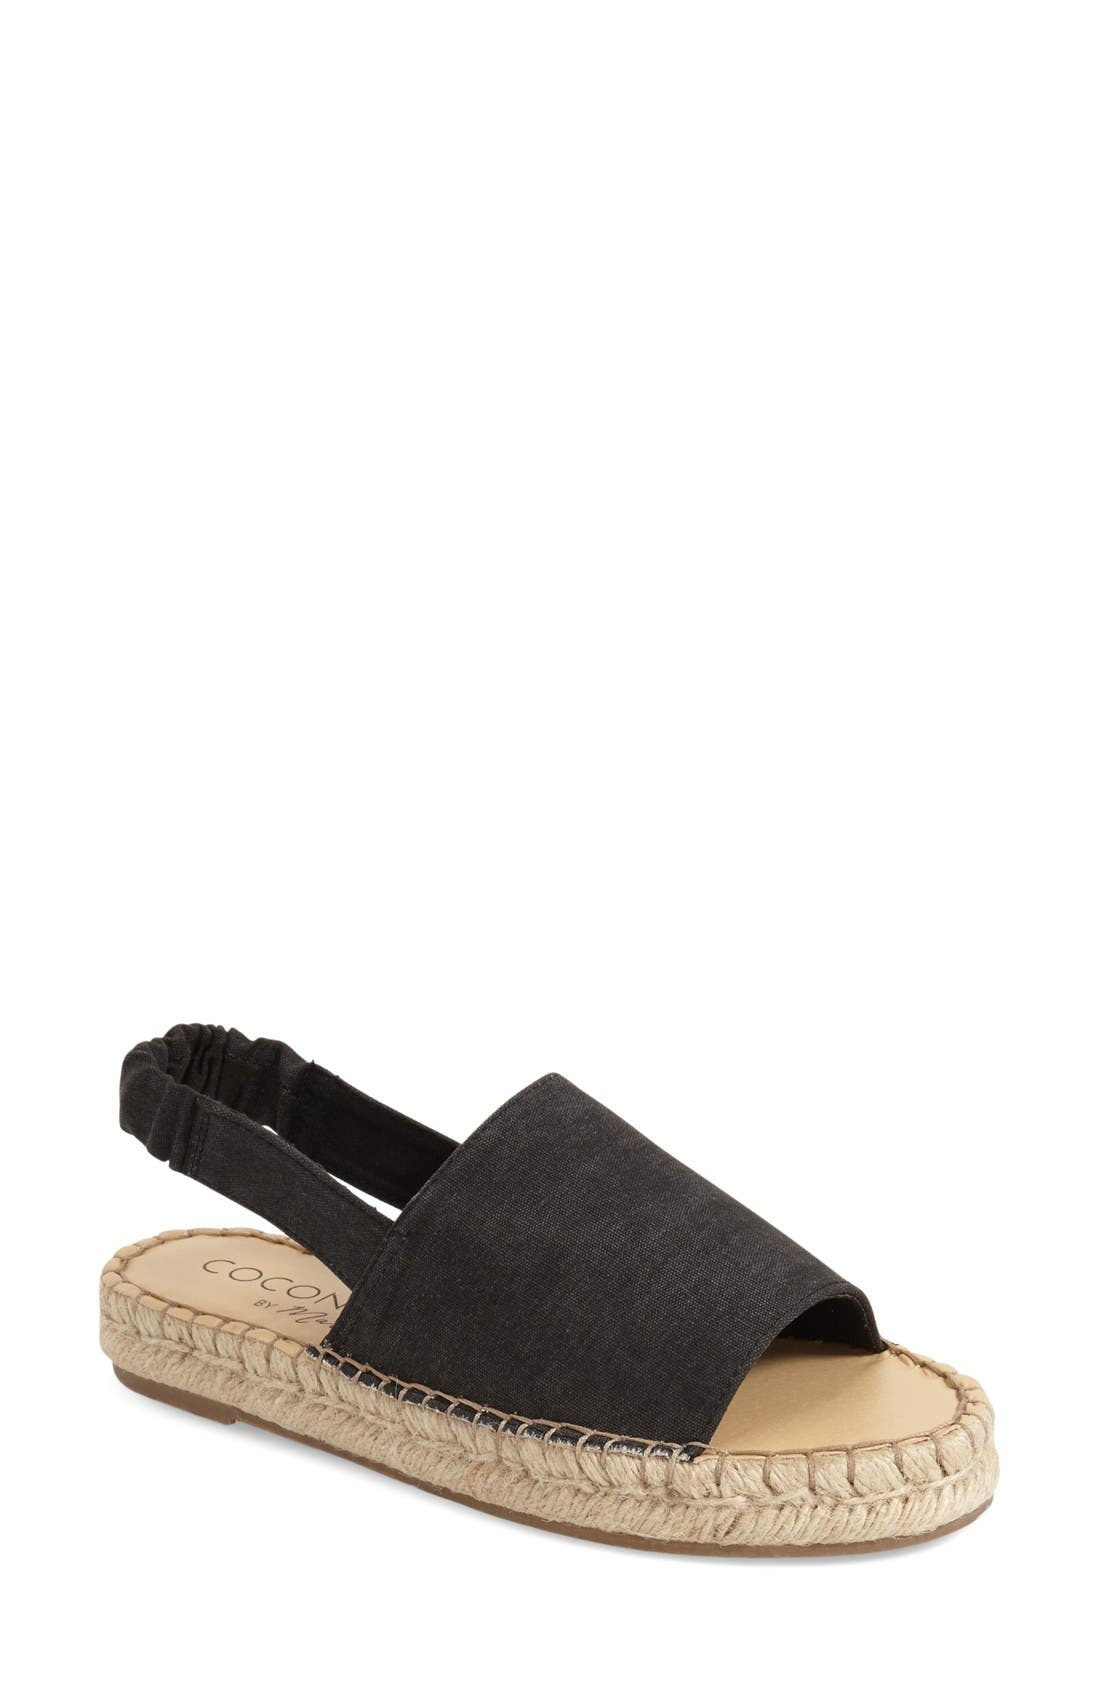 Alternate Image 1 Selected - Coconuts by Matisse 'Darling' Espadrille Sandal (Women)